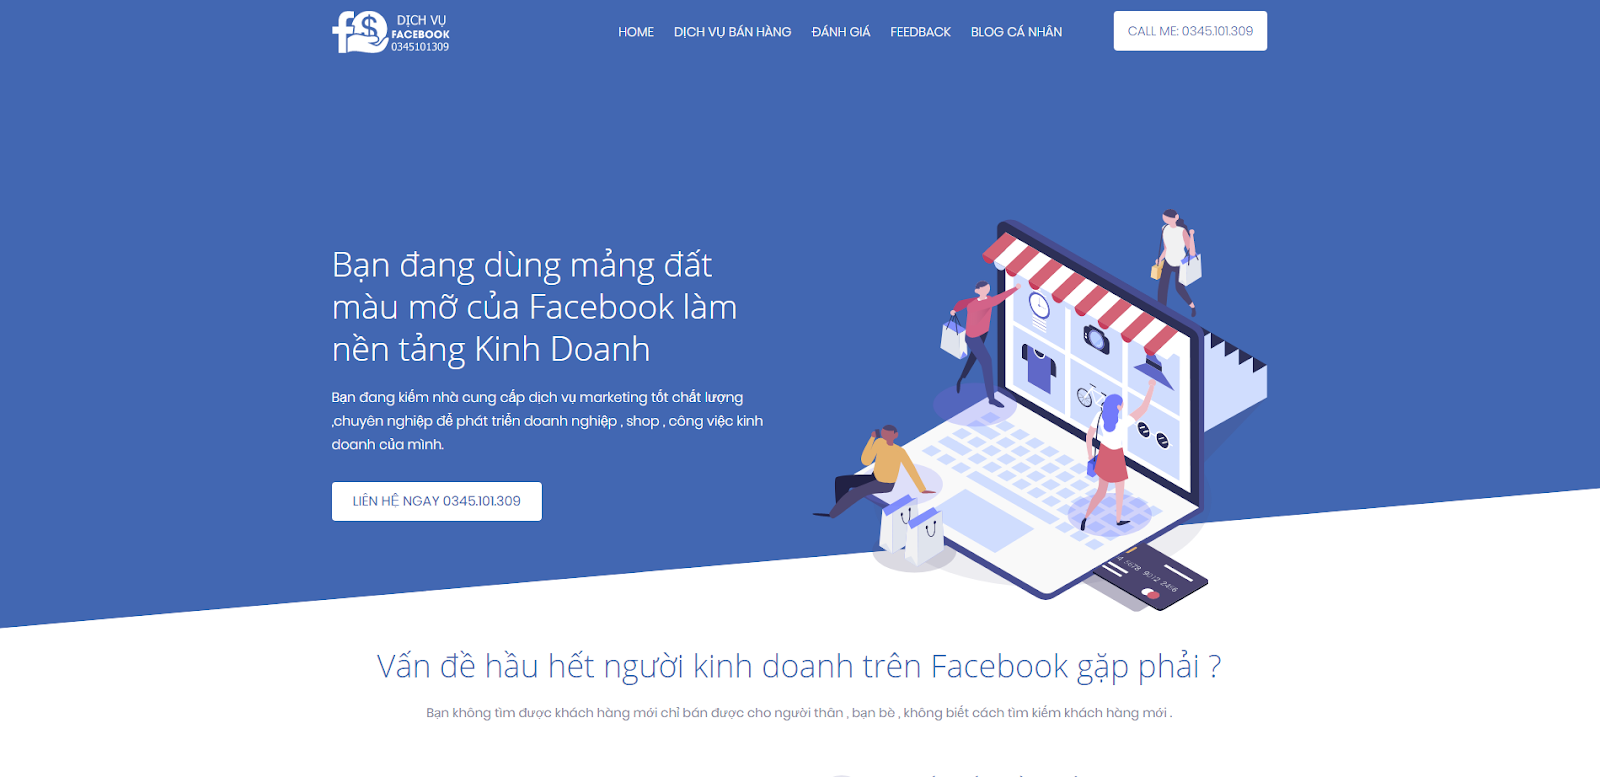 Share Template Dịch Vụ Facebook cực đẹp